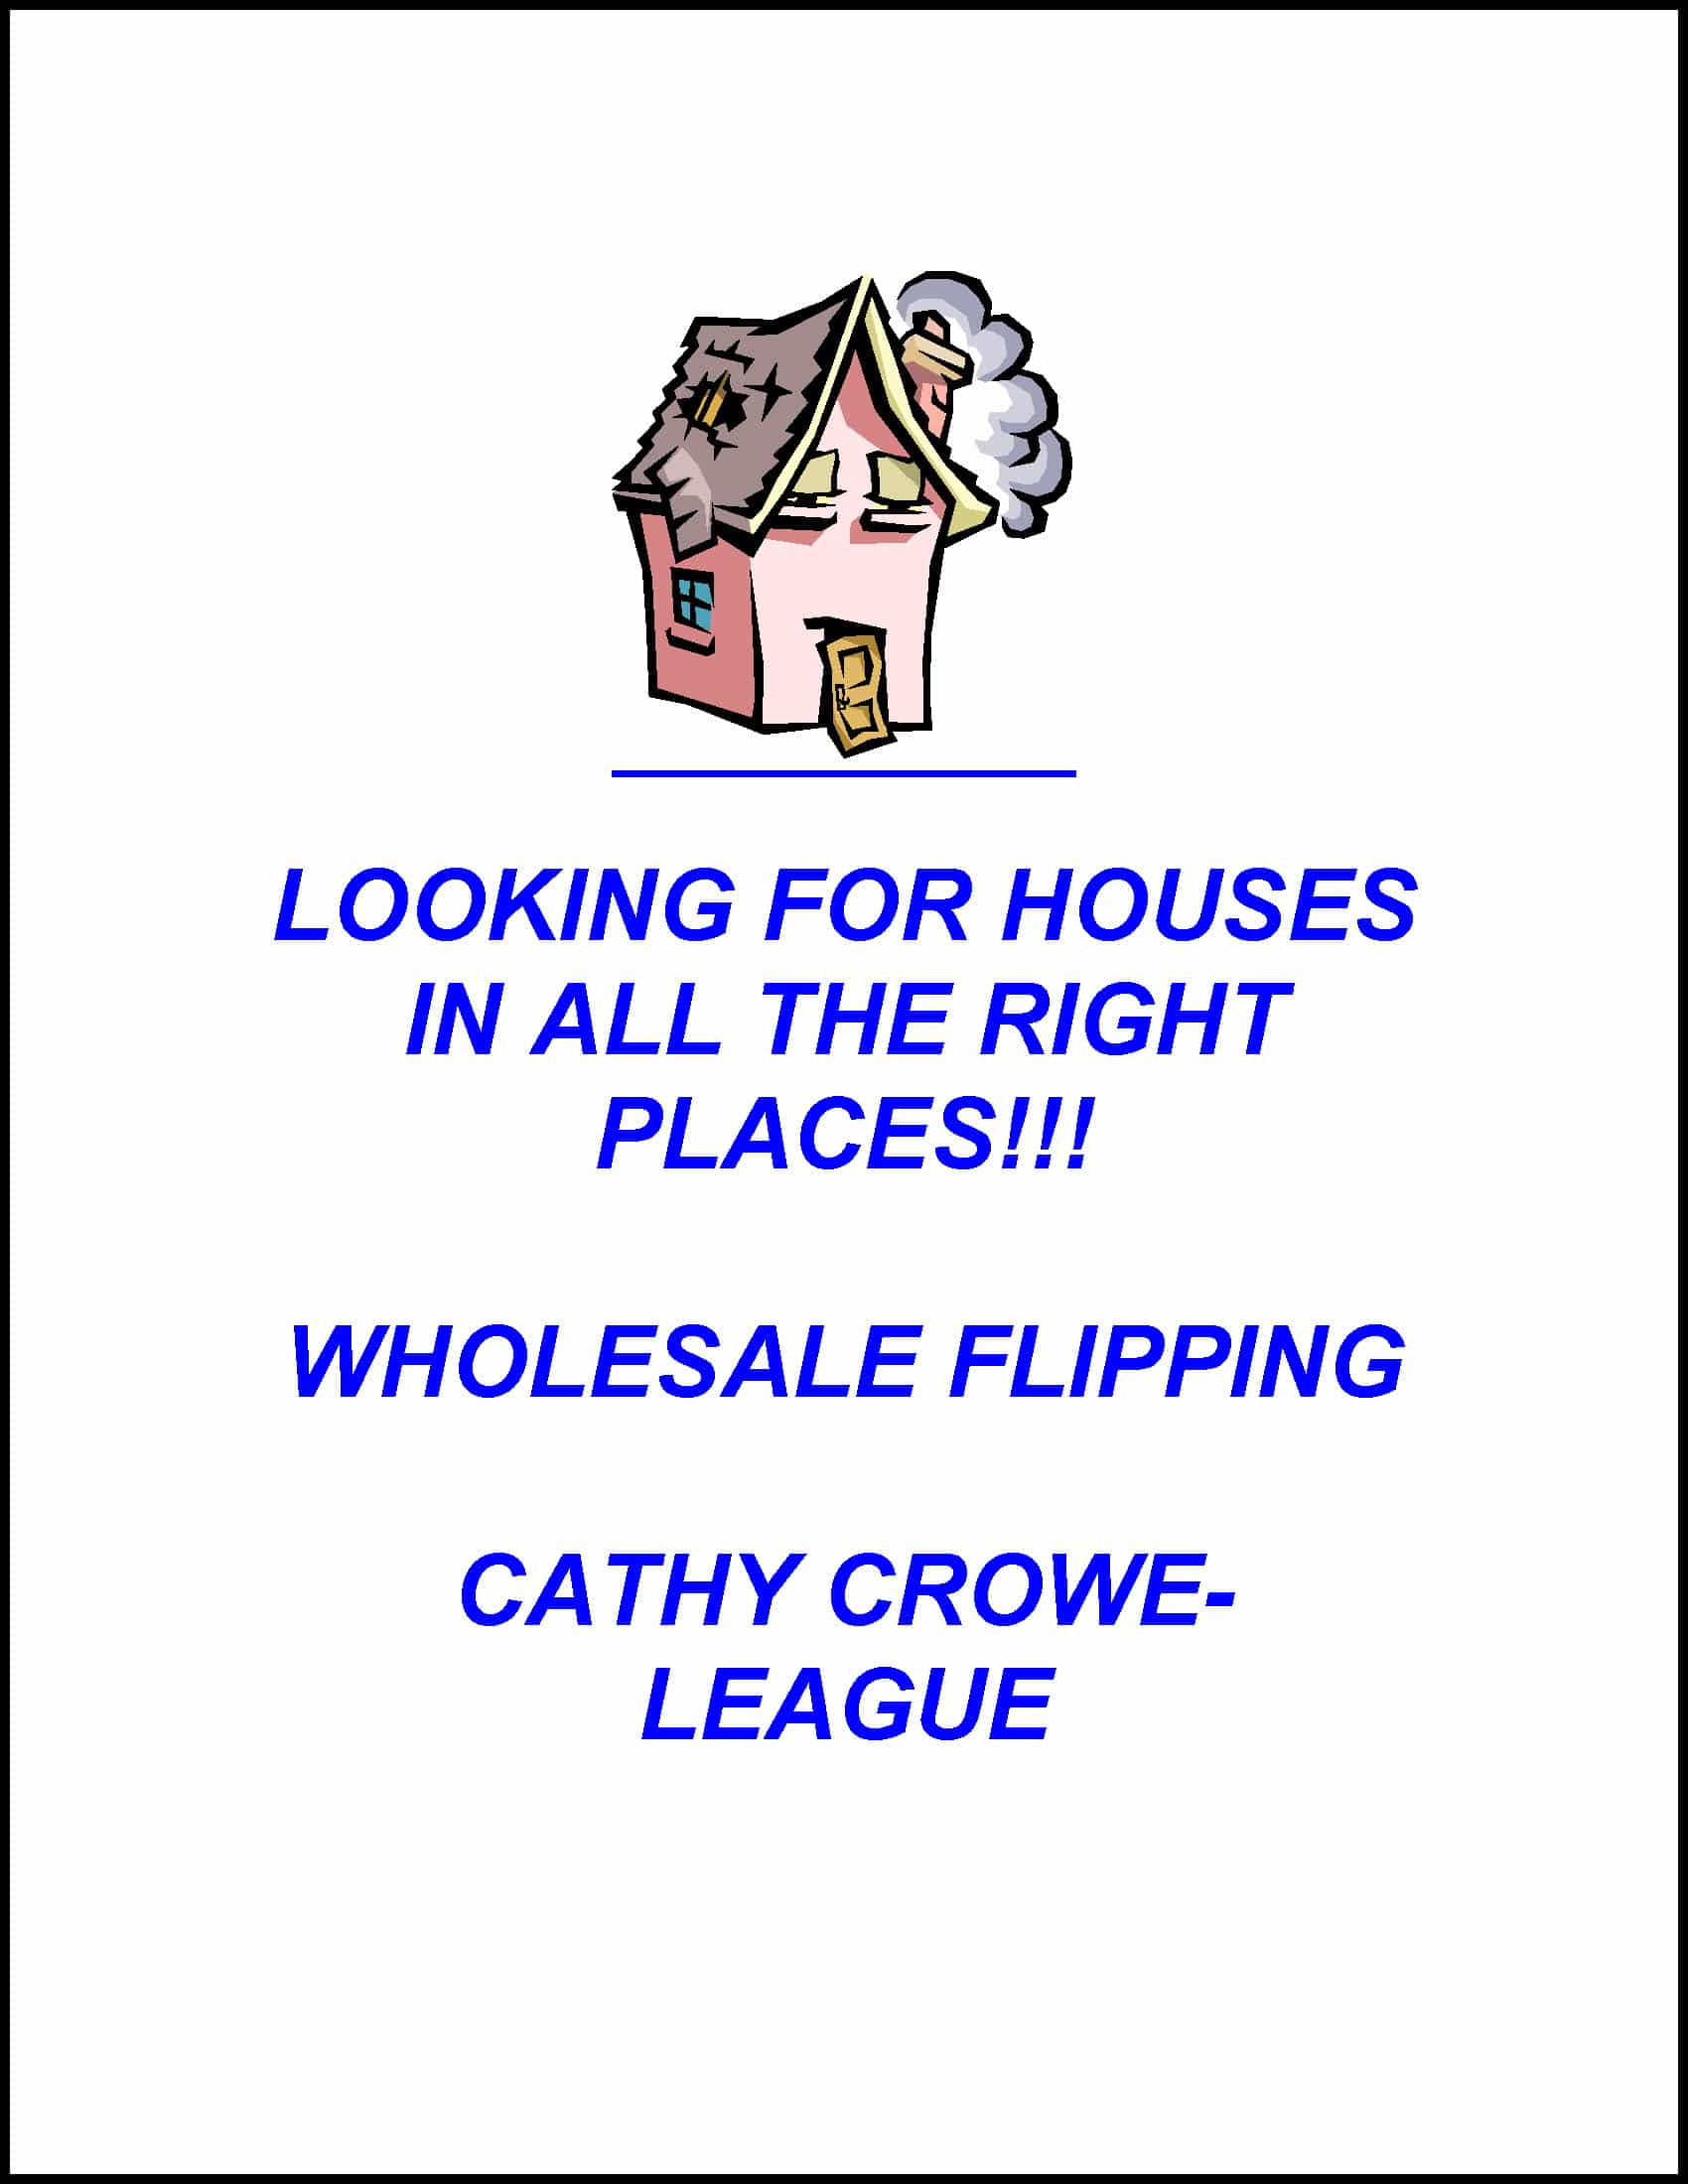 Cathy Crowe - Looking For Houses In All The Right Places!!!